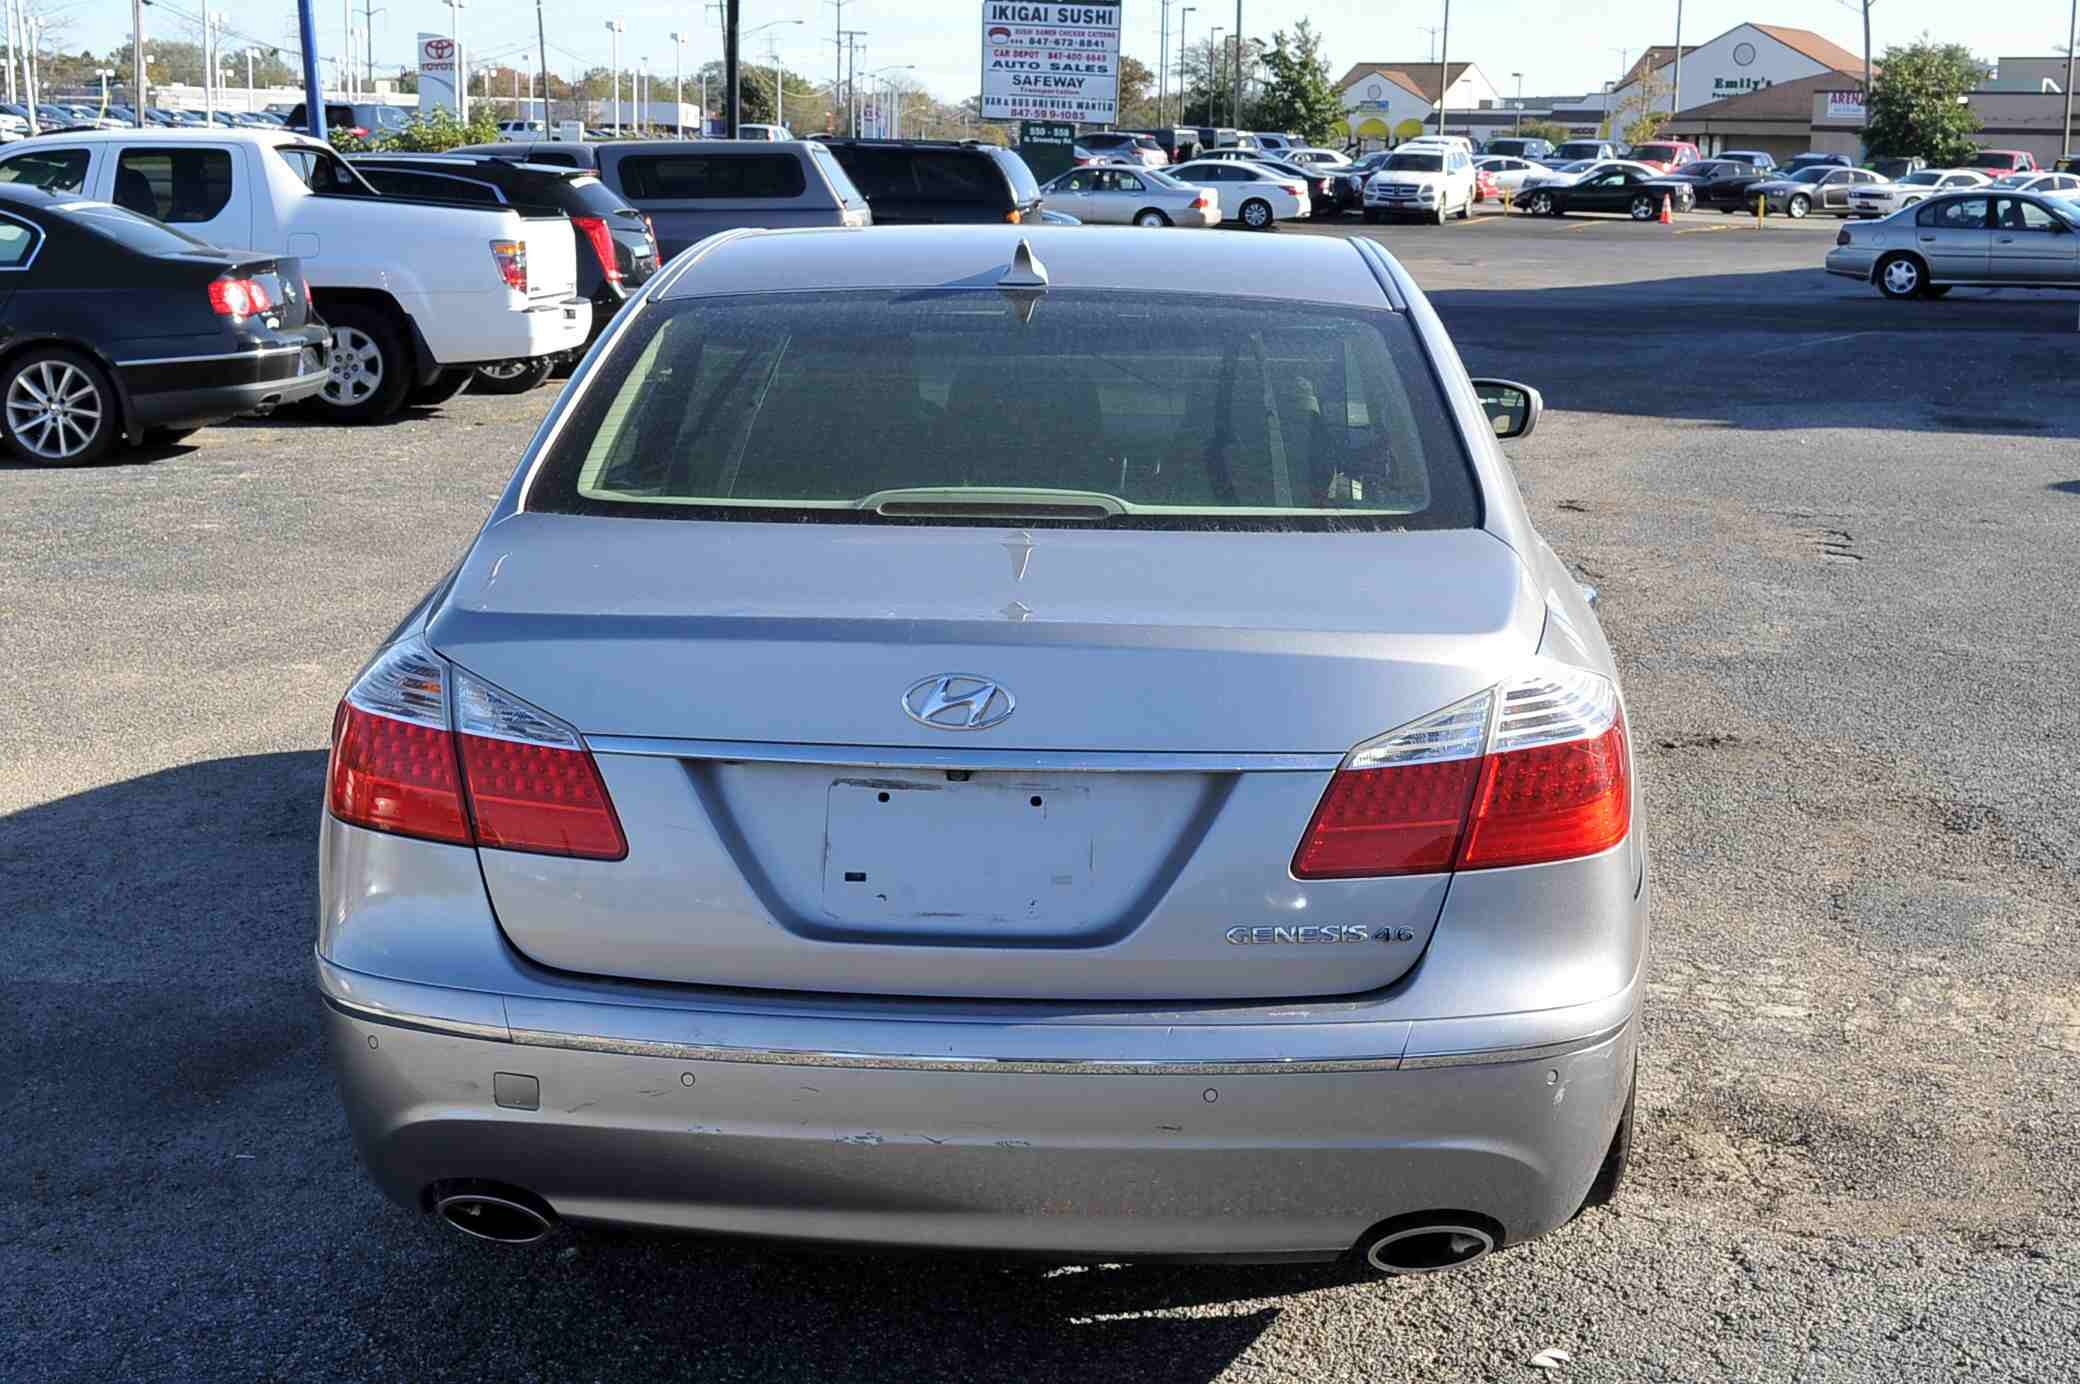 2009 Hyundai Genesis Silver Sedan Used Car Sale Fox River Grove Grayslake Volo Waucanda